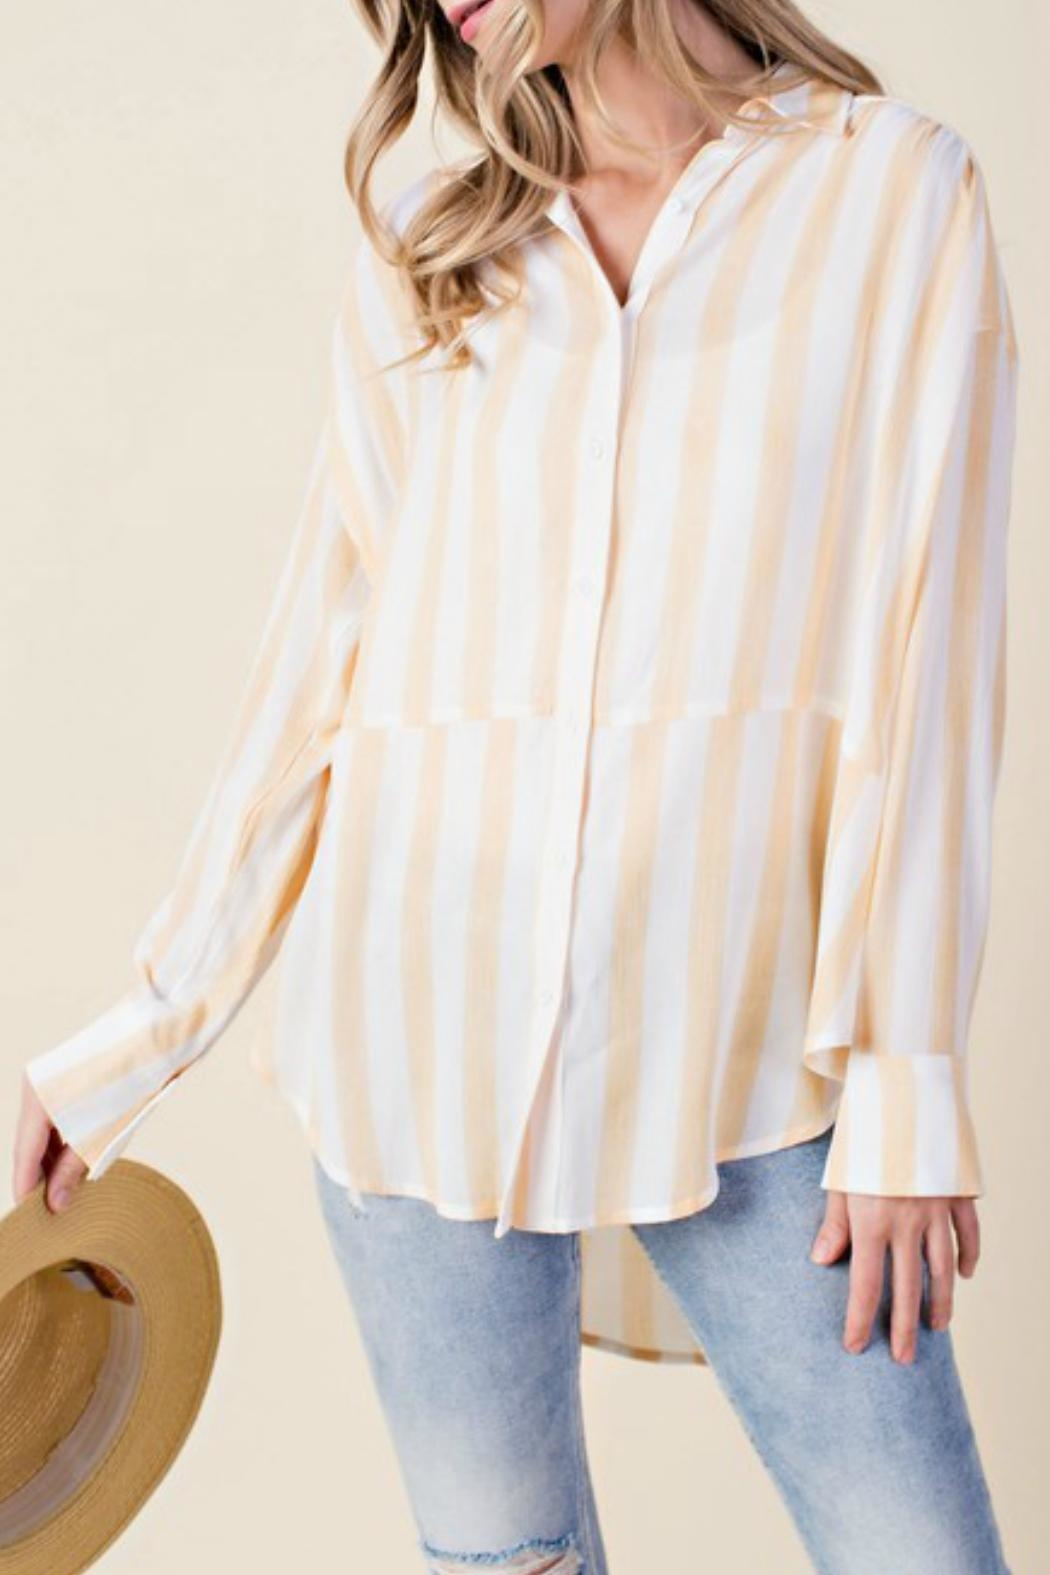 KORI AMERICA Striped Button-Down Top - Main Image